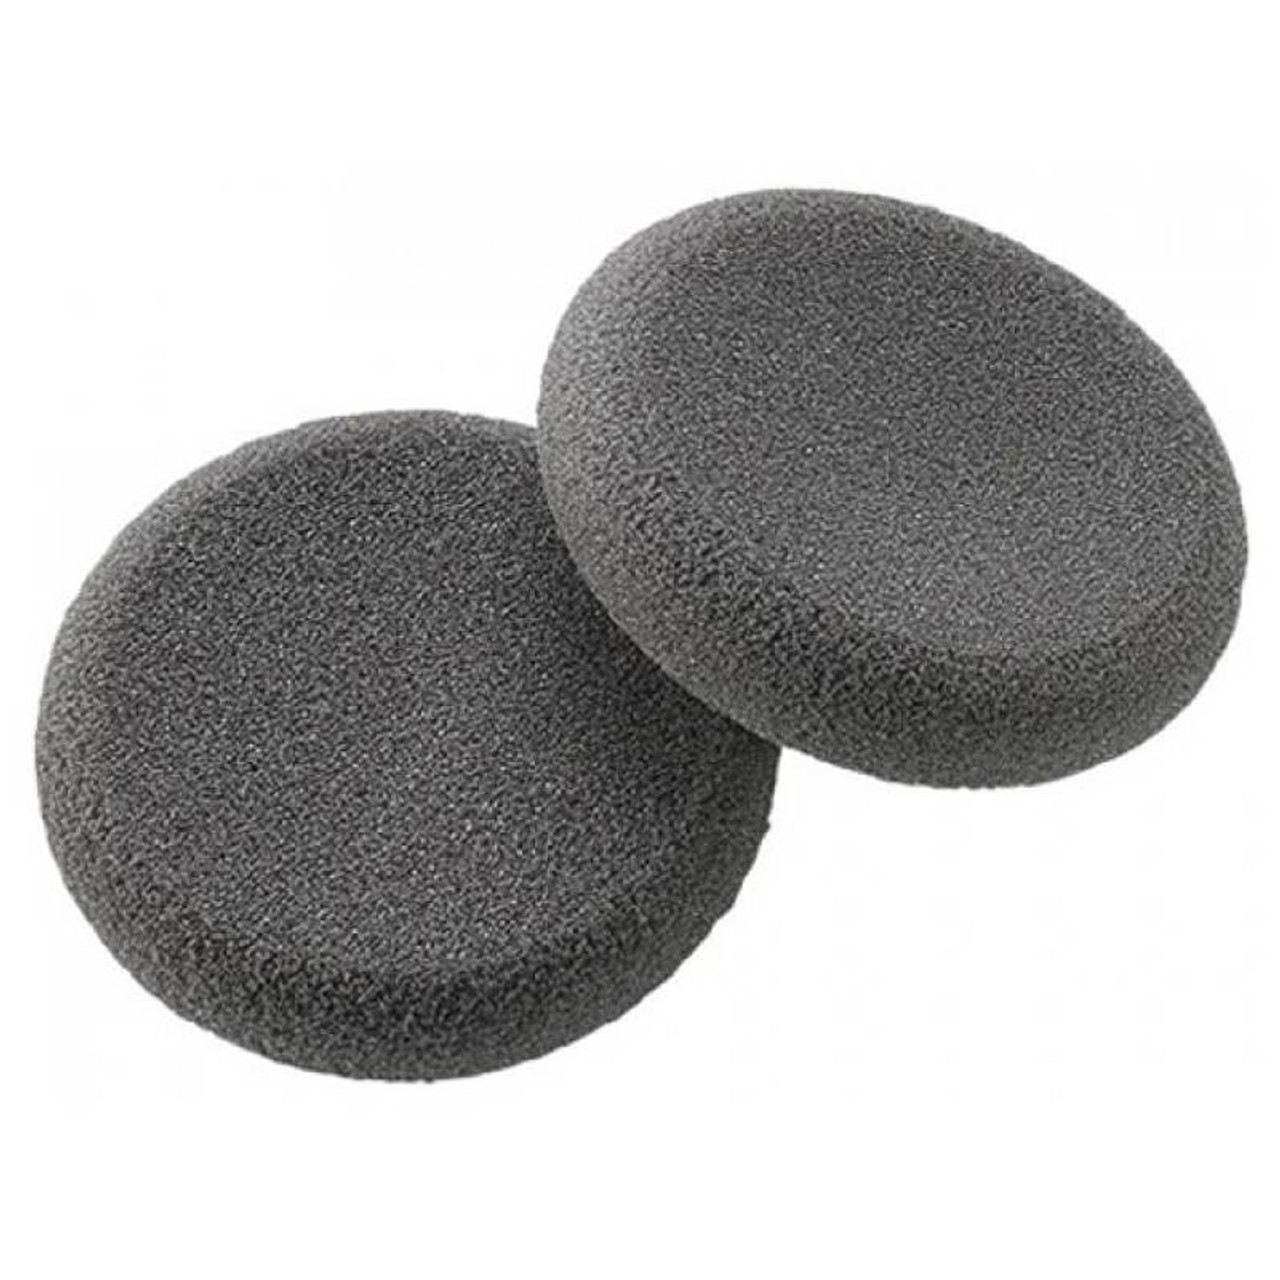 Image for Plantronics 2x Spare Foam Ear Cushion for Practica/Supra - Black CX Computer Superstore